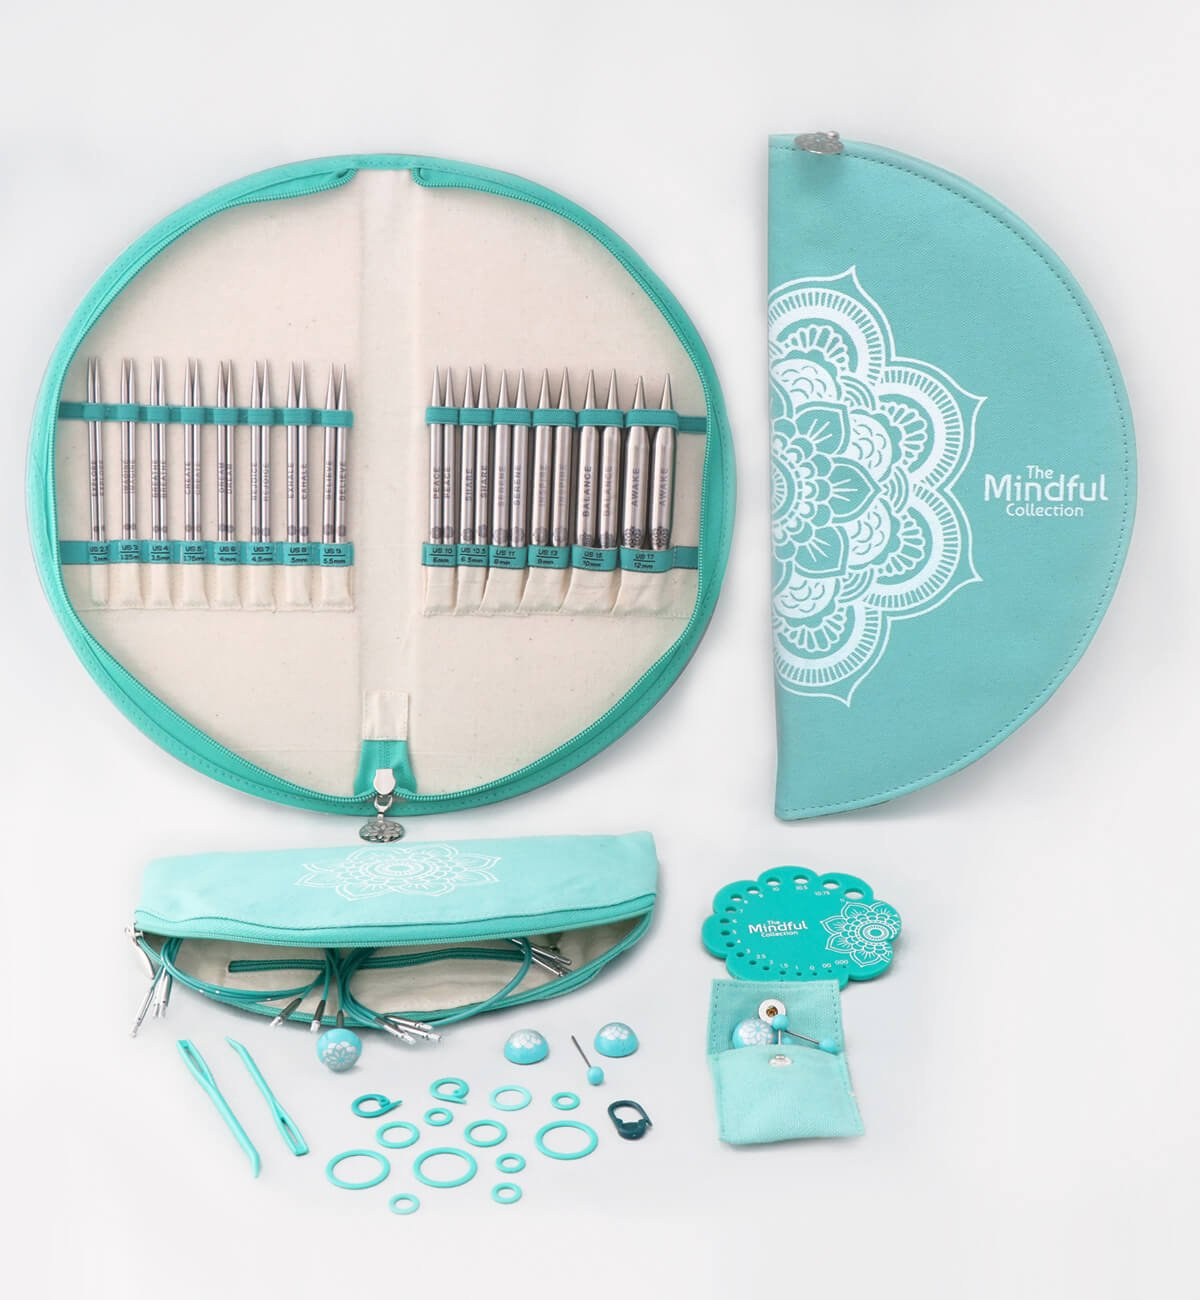 Mindful Gratitude Interchangeable Knitting Needle Set 5